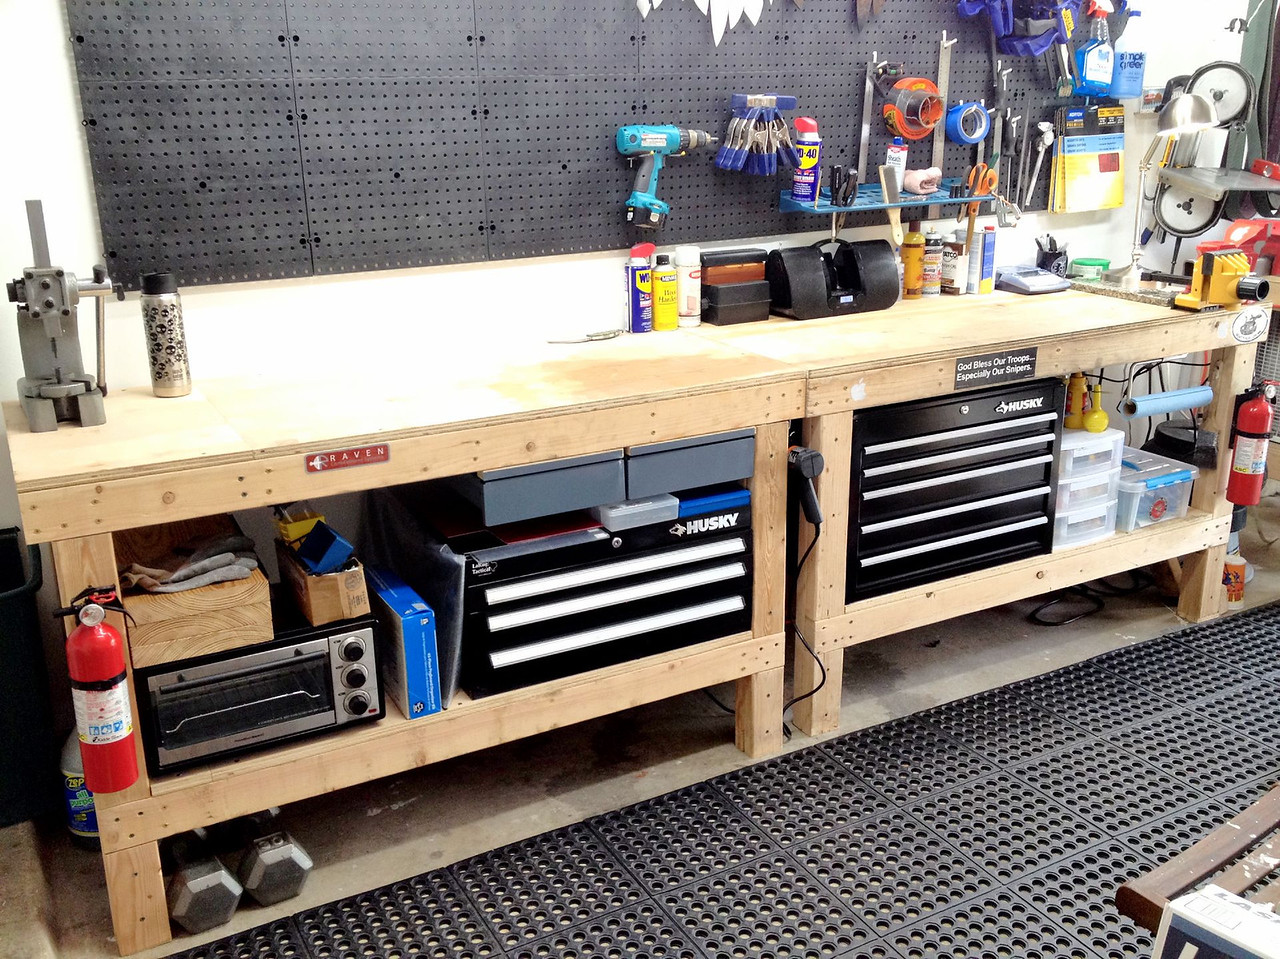 I haven't posted a progress update in a few days, so I thought I'd share what I've been up to.<br /> <br /> I found myself increasingly irritated with the state of my shop, so I ceased working on knives and started working on improving shortfalls of the shop.<br /> <br /> The first order of business was to increase storage.  Specifically knife storage.  I haven't had a suitable place for finished knives, so they've just been sitting on the workbench with a blue shop towel over them.  Any heavy grinding resulted in steel or wood or G10 dust all over my pretty knives that were awaiting sheaths.<br /> <br /> Here you can see how the shop looks as of today.  I've added a 5-drawer tool chest and mounted 2 metal drawers in the sheath/finishing bench and 1 metal drawer in the grinding/drilling bench.  I've also rearranged many things to improve effeciency and workflow.